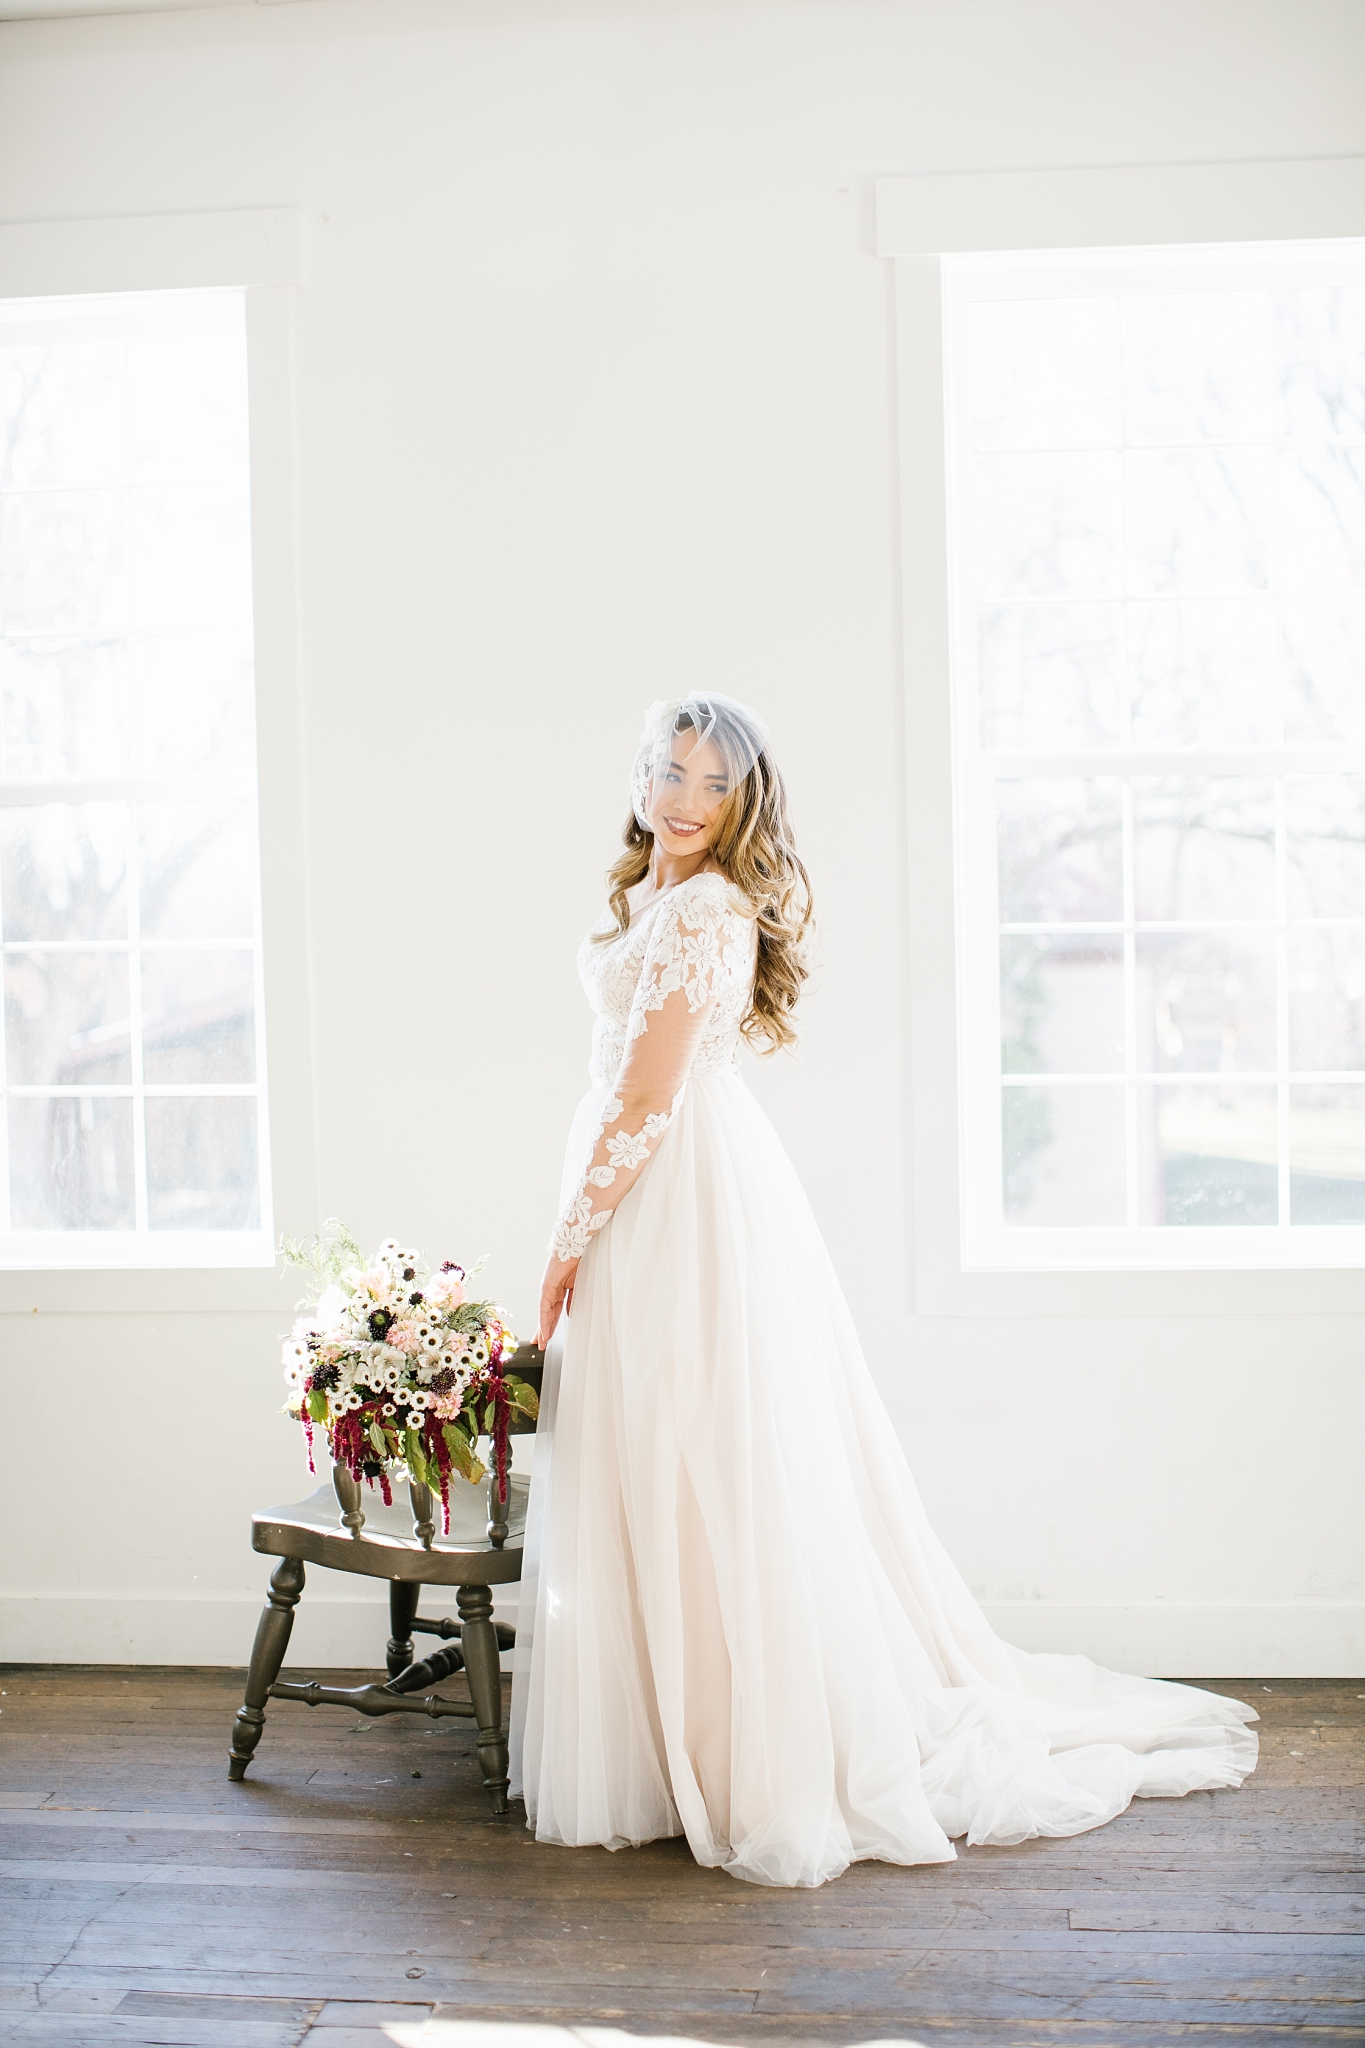 748A1185-Edit-65_Lizzie-B-Imagery-Utah-Wedding-Photographer-Park-City-Wedding-Photographer-The-Loft-Studio-Lehi-Utah.jpg